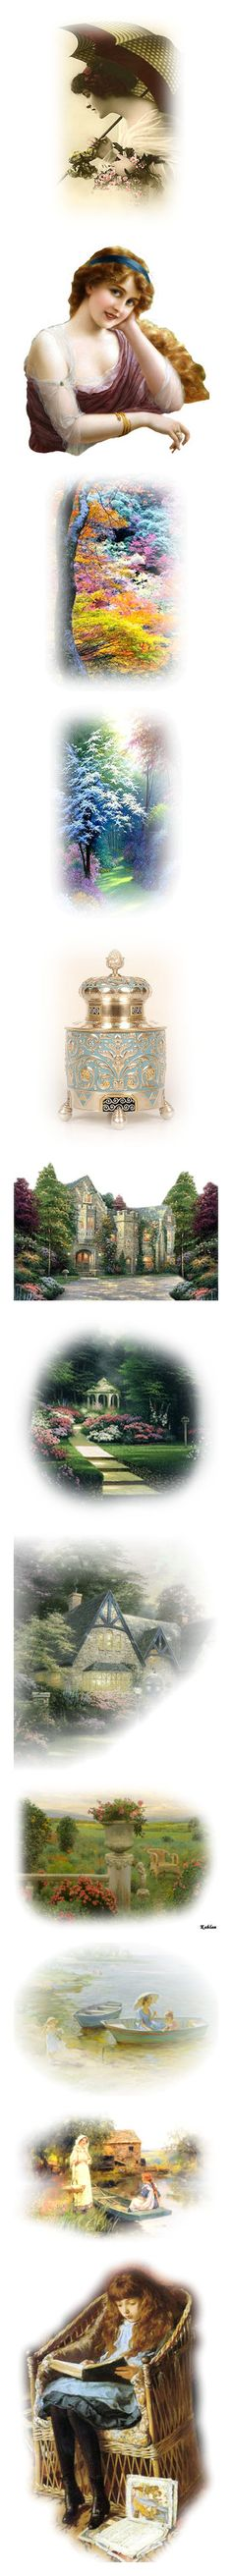 """Victorian"" by mfoster07 ❤ liked on Polyvore featuring backgrounds, tubes, castles, landscape, art, effects, filler, psd, fillers and buildings"